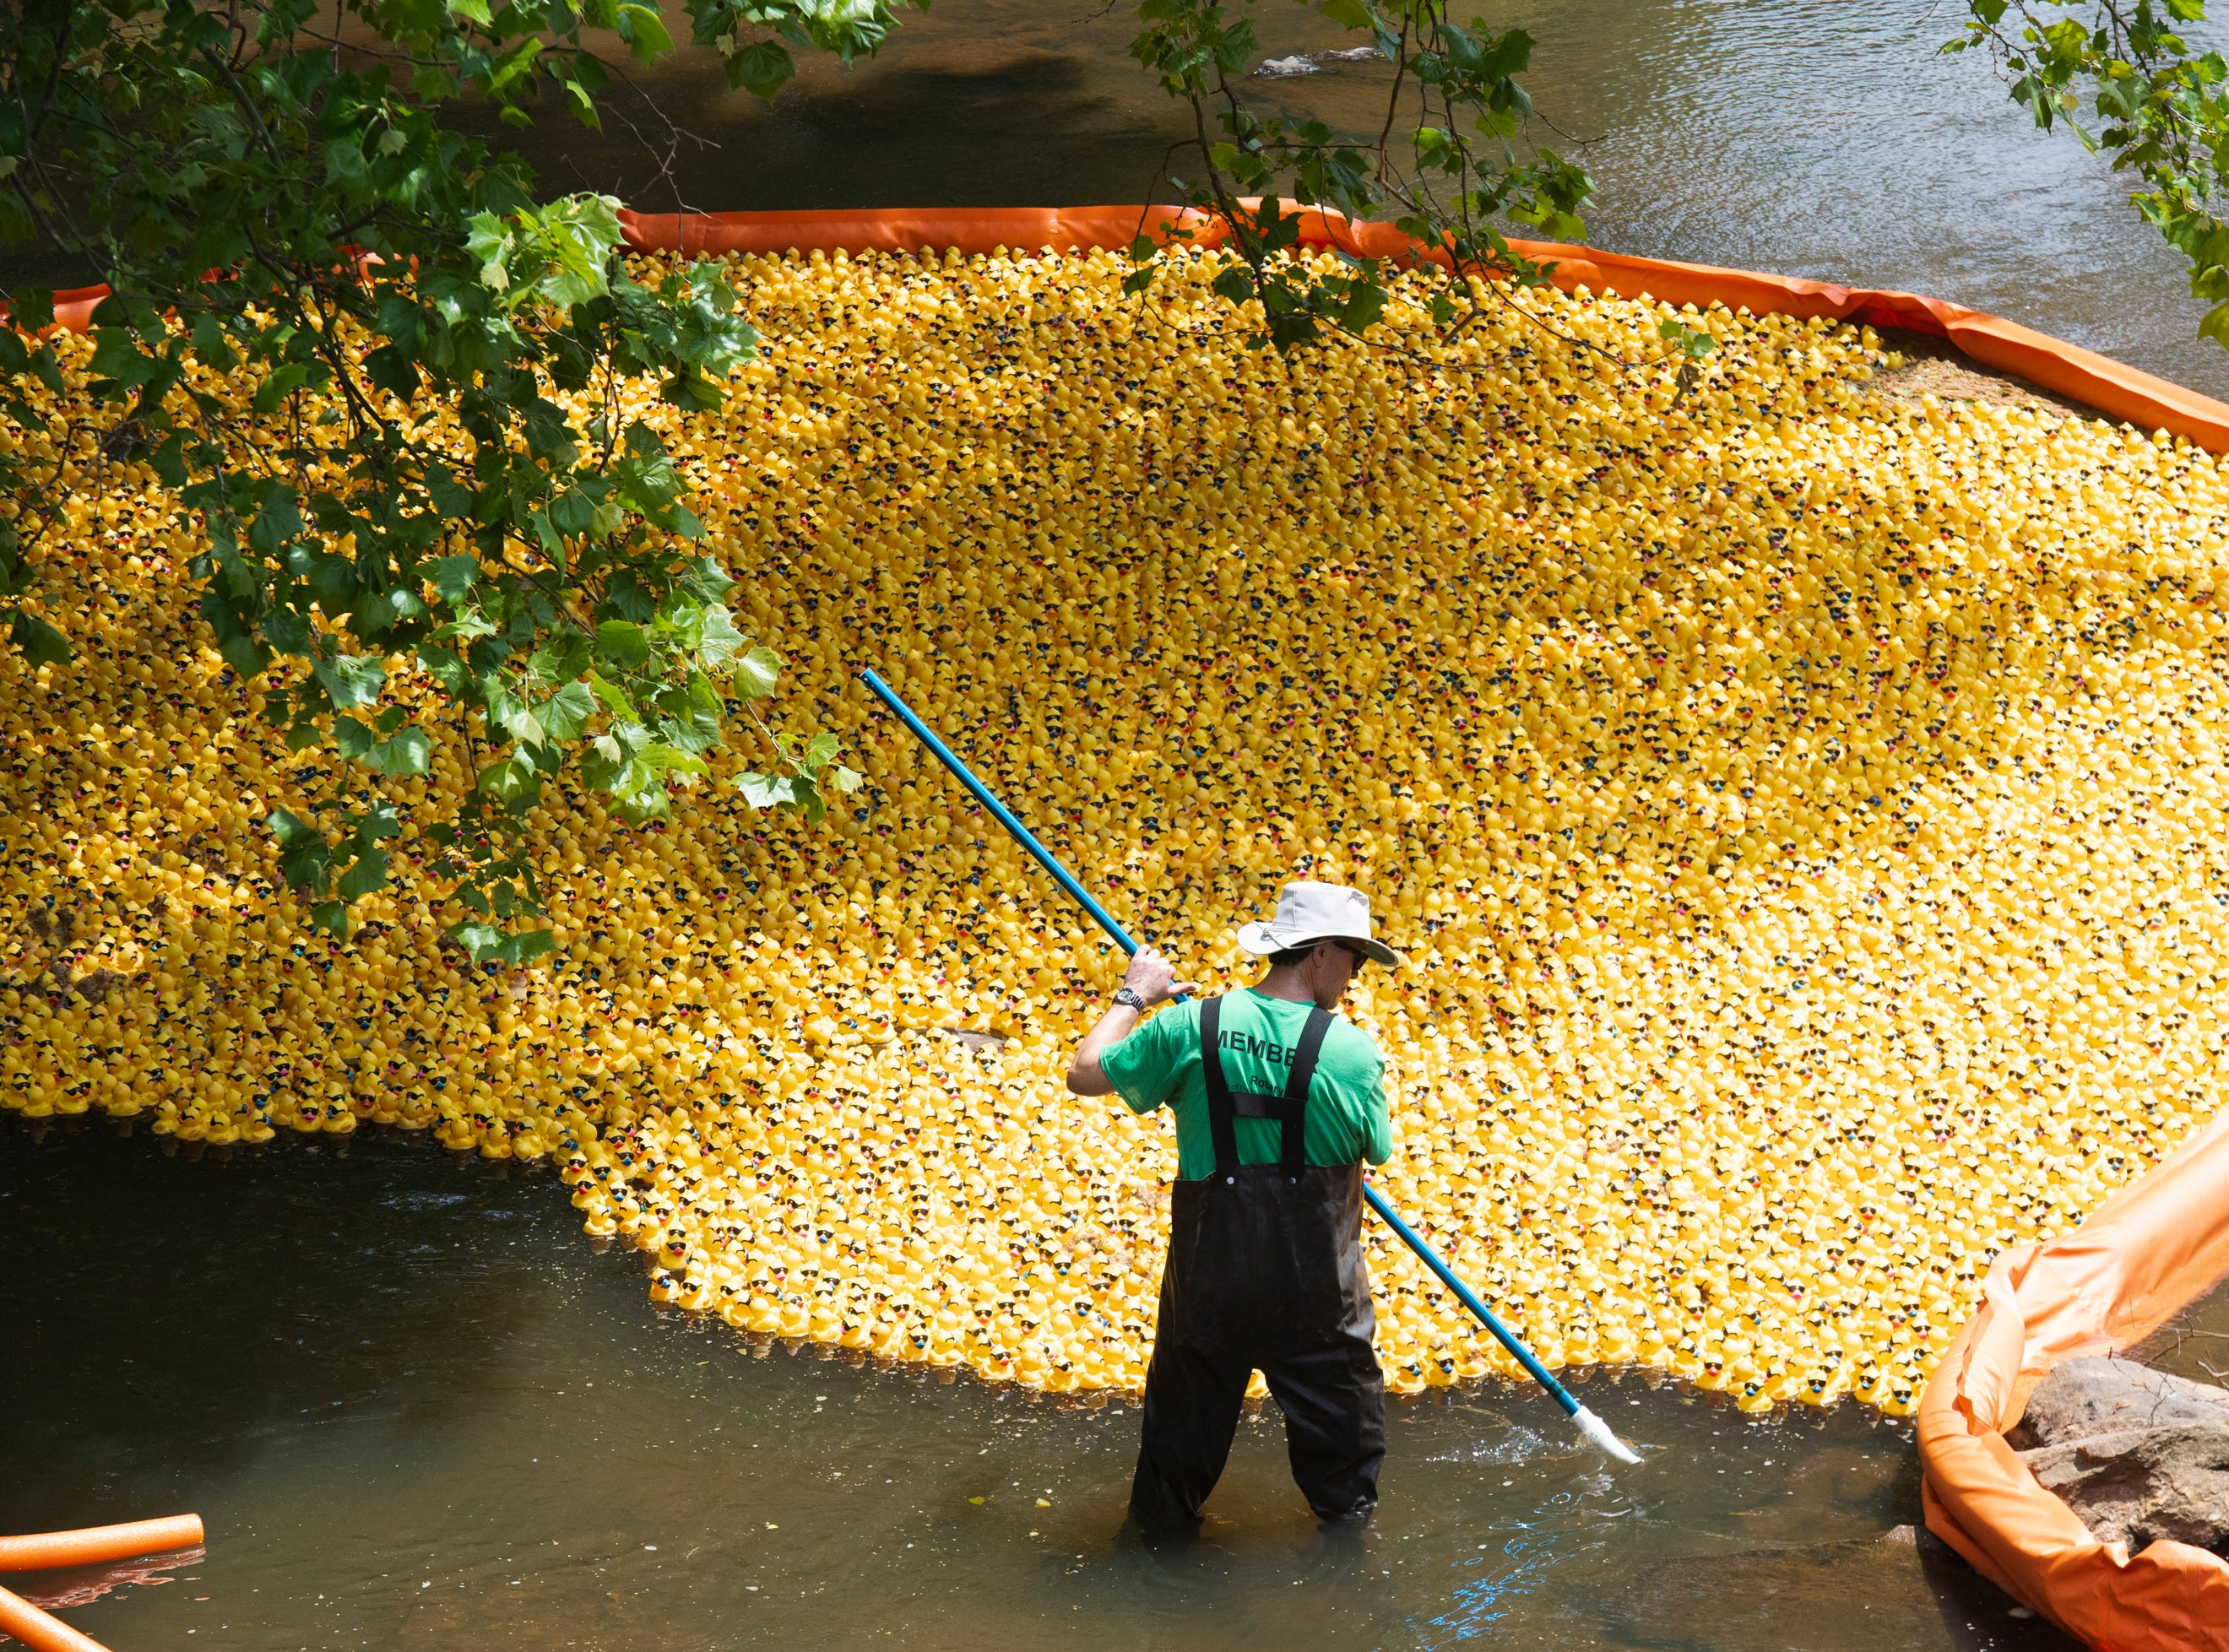 Eric Krichbaum corrals ducks before the start of the 2019 Reedy River Duck Derby in Falls Park on the Reedy Saturday, May 4, 2019.